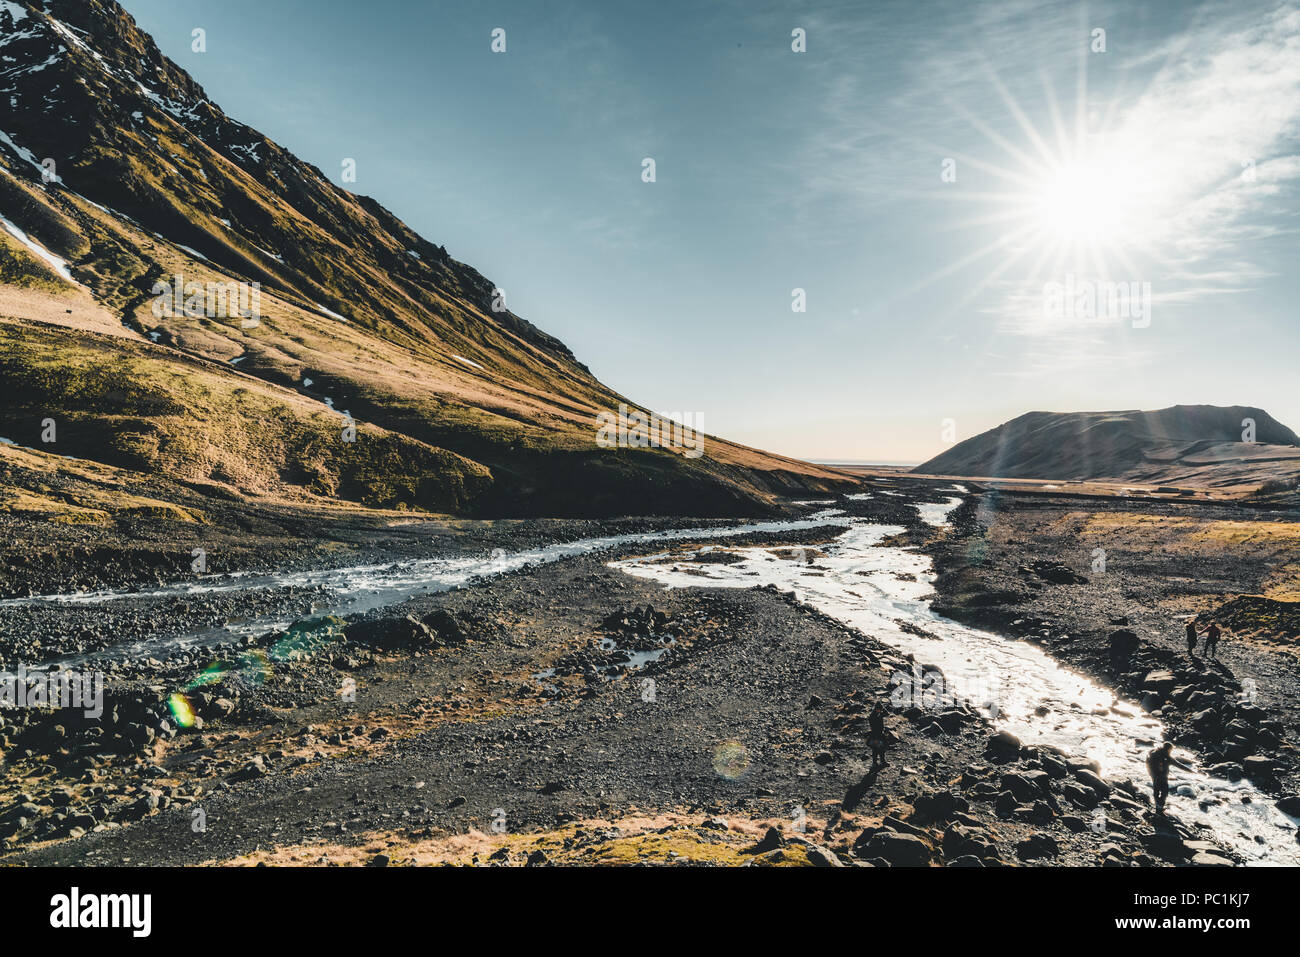 Iceland Fantastic views of the landscape with river and mountain with blue sky on a sunny day. Stock Photo